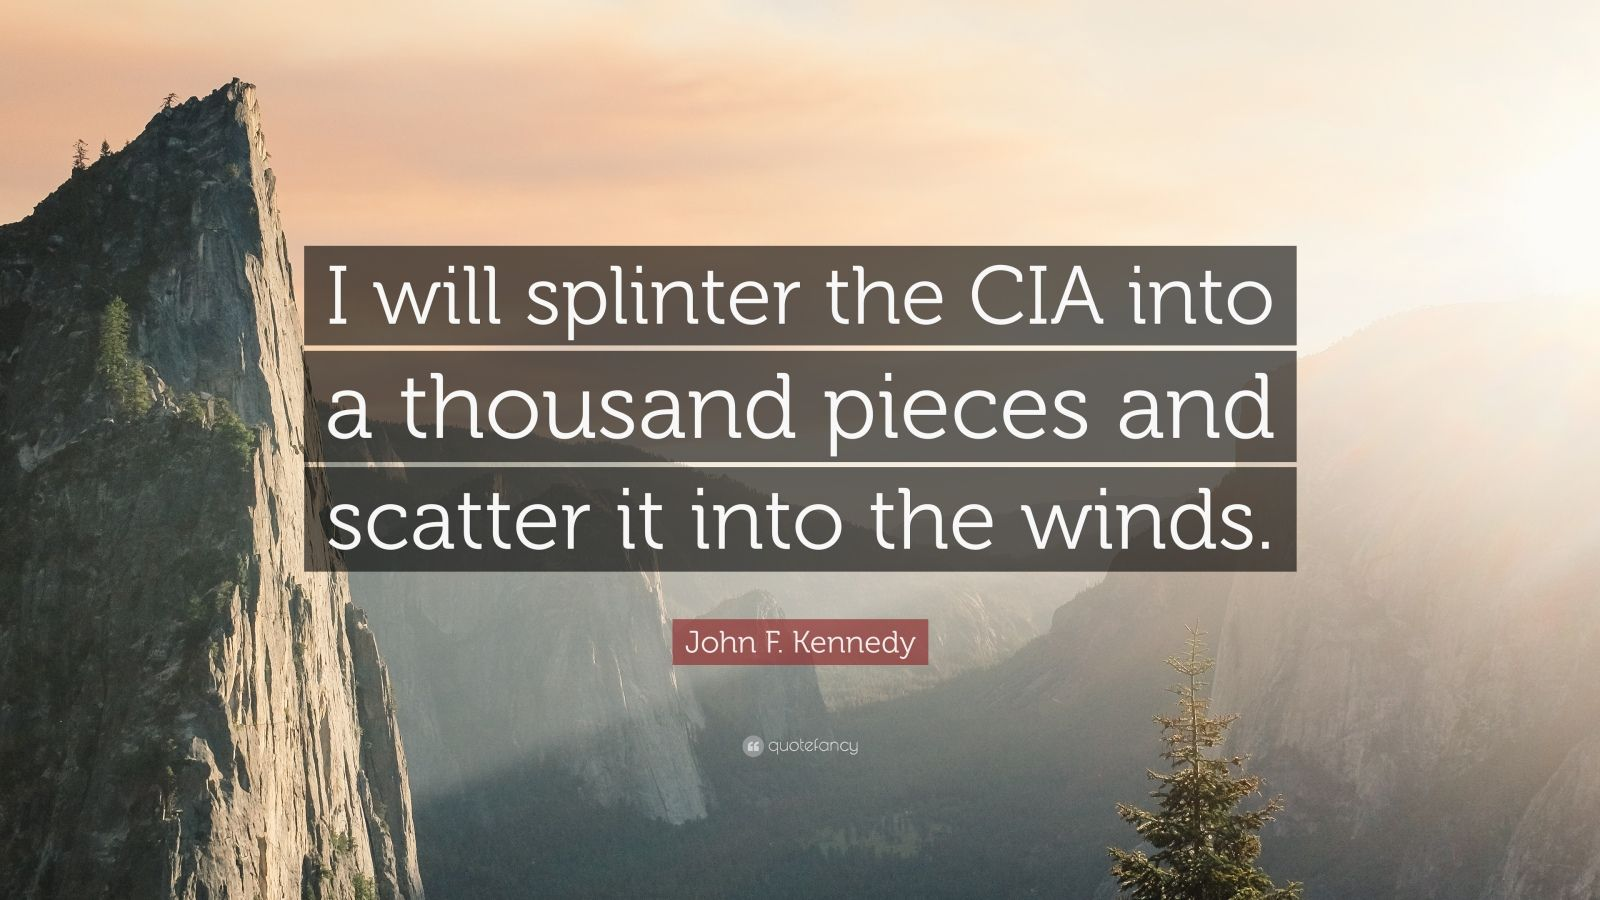 Work Hard Inspirational Quotes Wallpaper John F Kennedy Quote I Will Splinter The Cia Into A